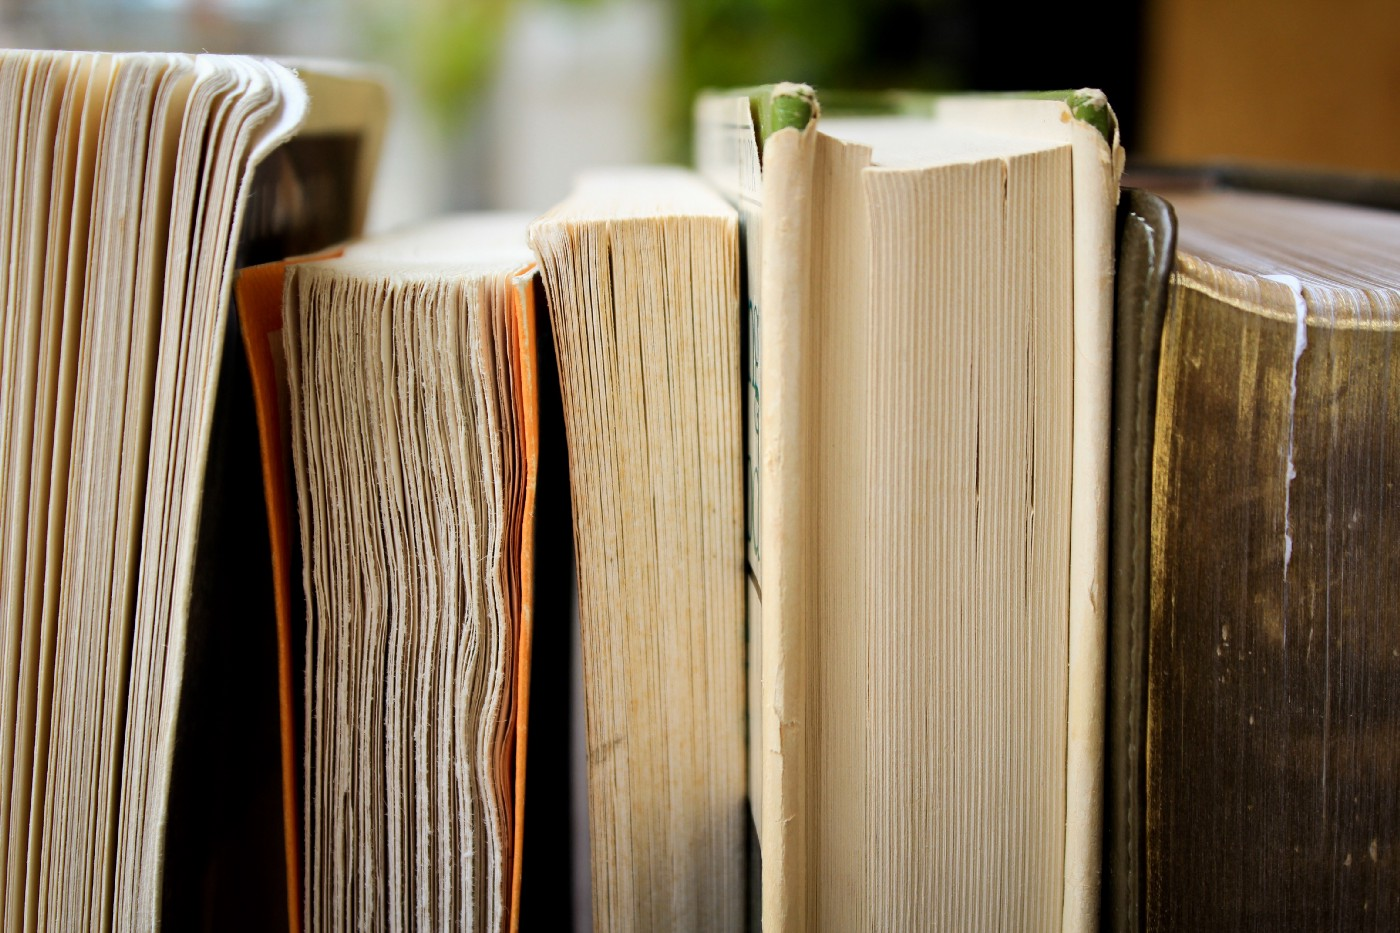 But here's a list of books that helped me be more productive.—of them showed me how to function efficiently and with concentration. They can, hopefully, do the same for you.